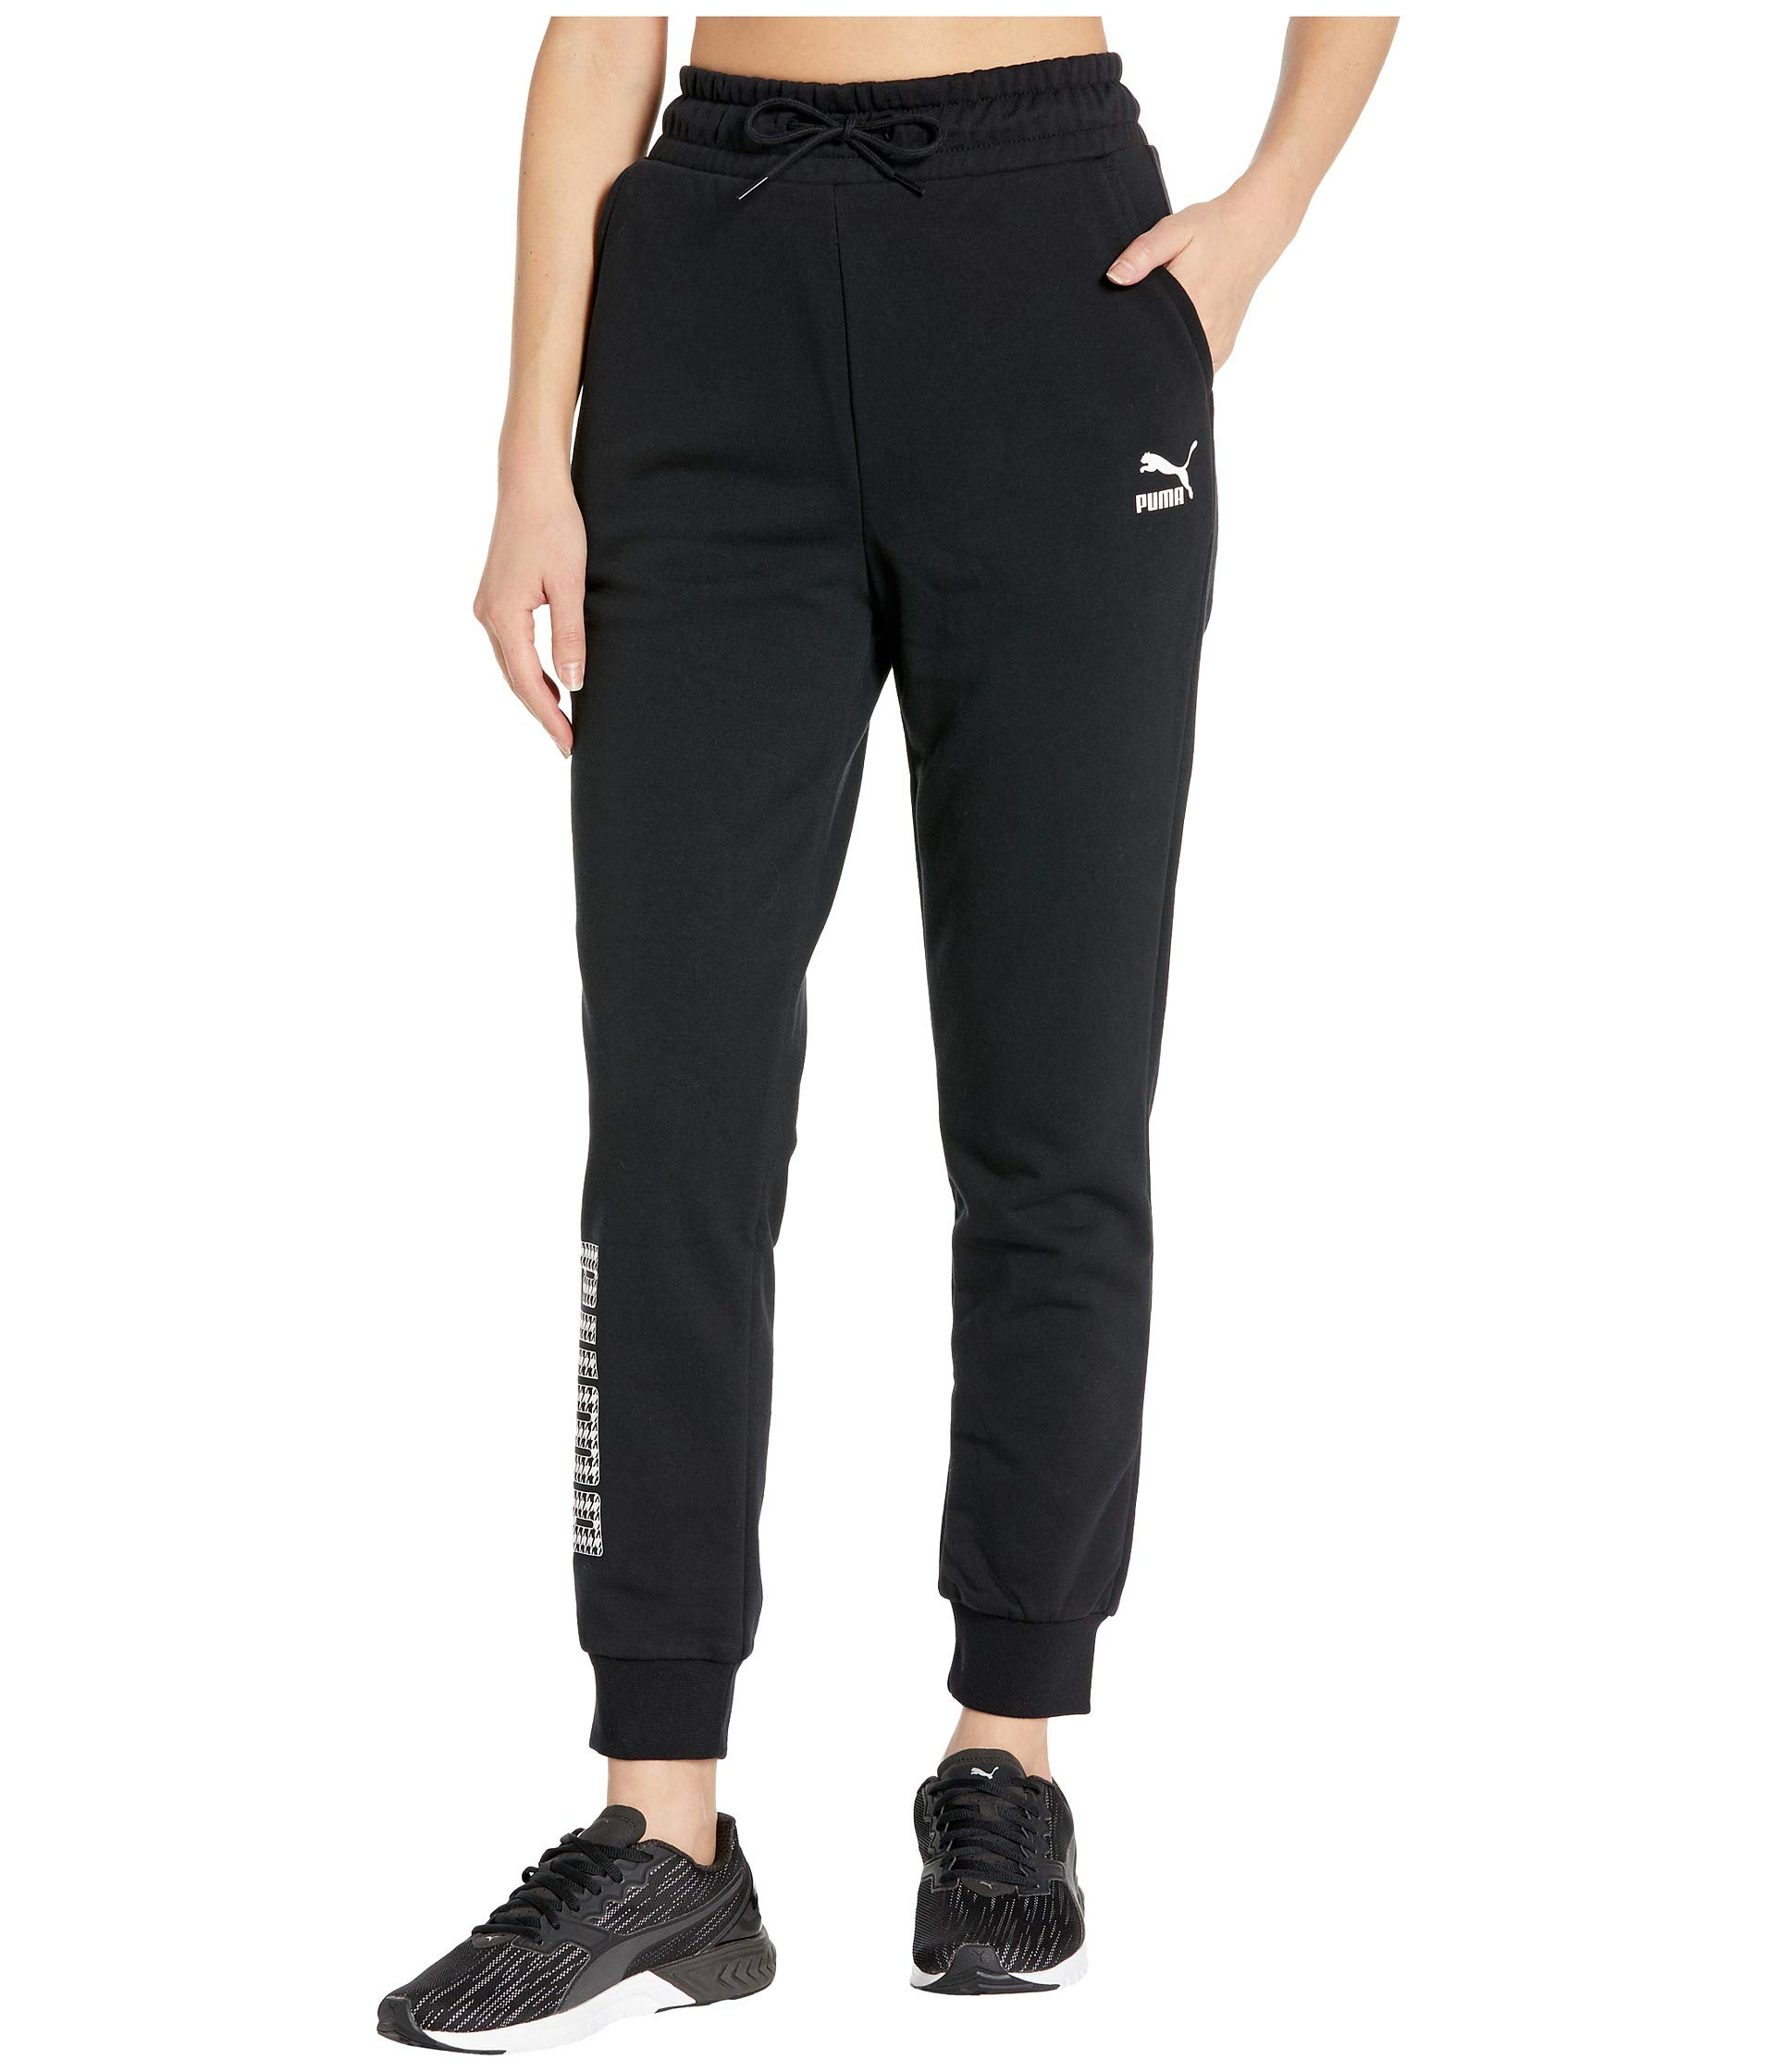 Trend All Over Print Knitted Pants by Puma, available on zappos.com for $54.95 Selena Gomez Pants Exact Product